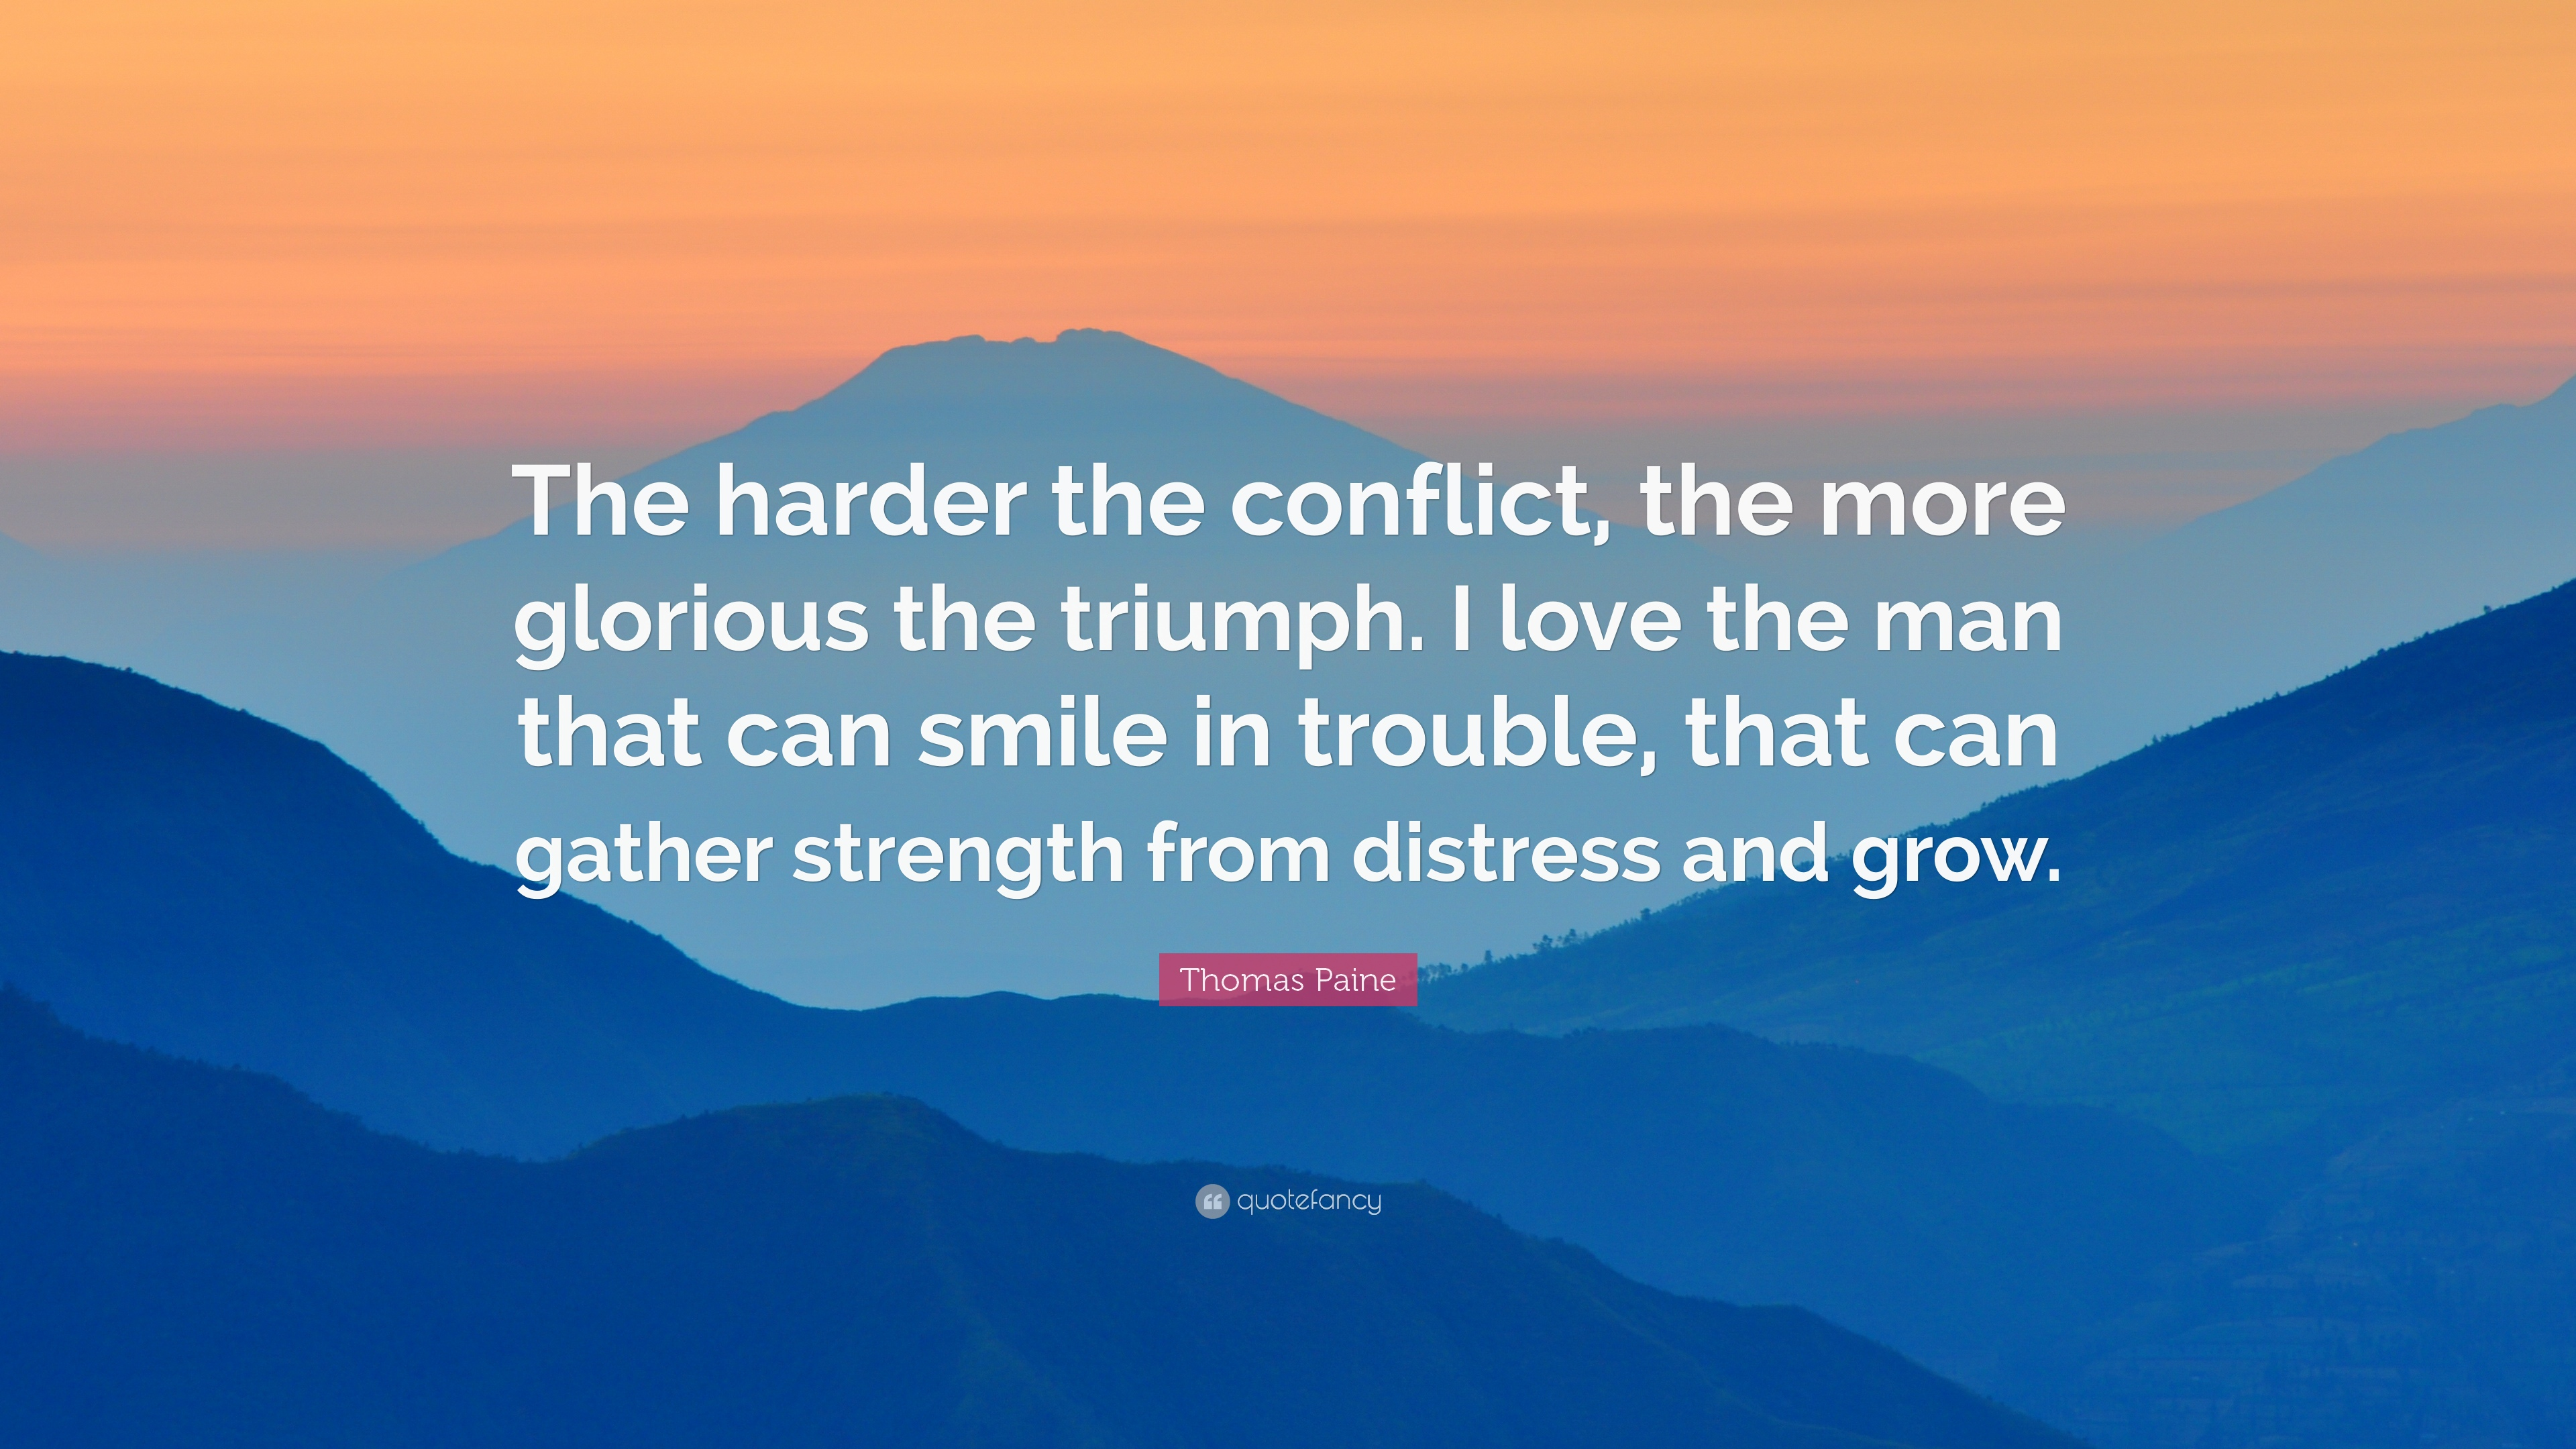 """the harder the conflict the more An inspirational quote by thomas paine about the value of team work: """"the harder the conflict, the more glorious the triumph what we obtain too cheap, we esteem too lightly it is dearness only that gives everything its value."""